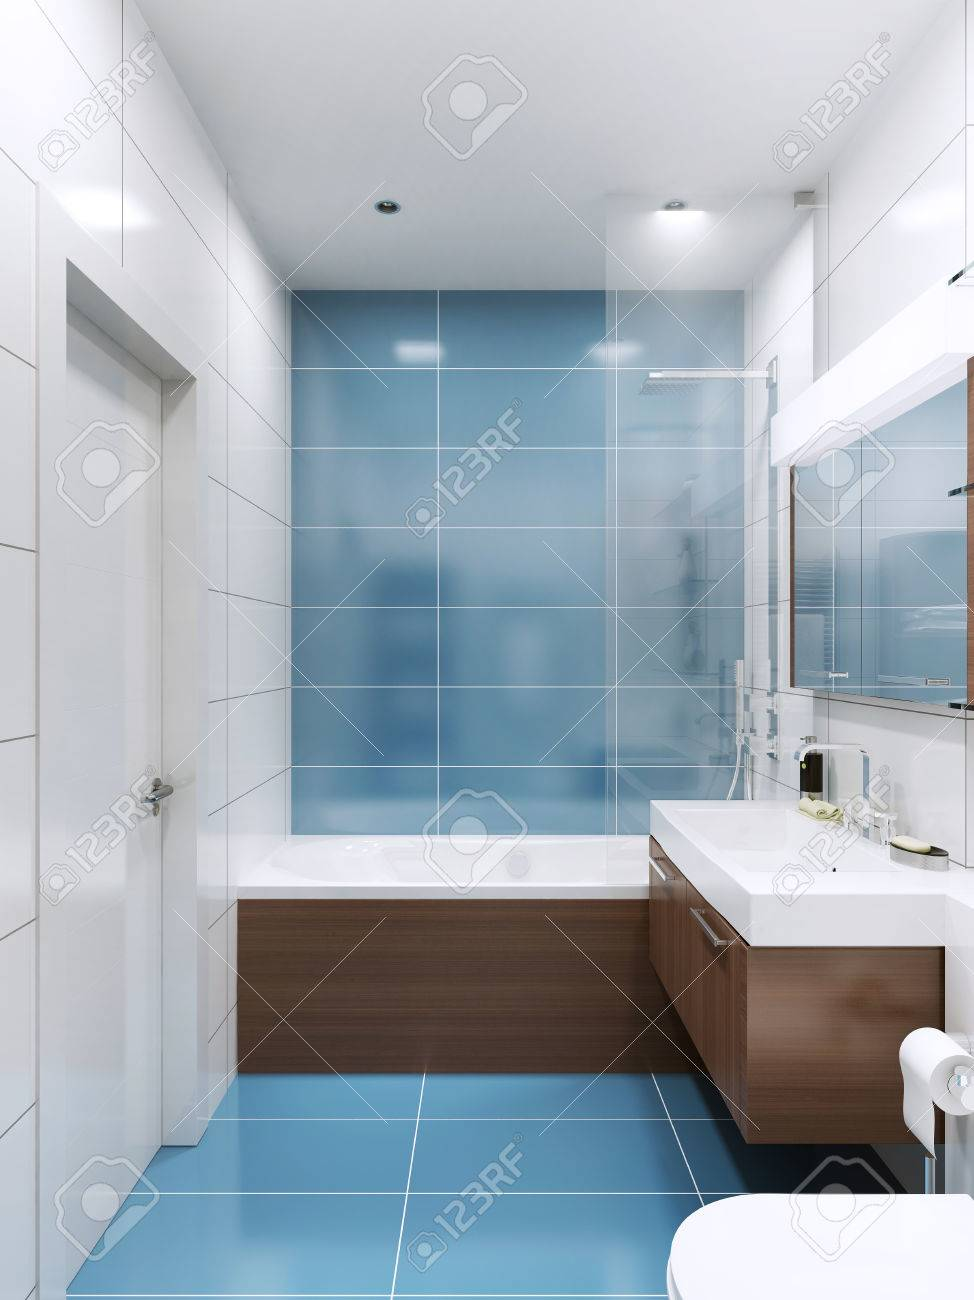 Blue And White Bathroom With Brown Wooden Futnirute In Contemporary ...